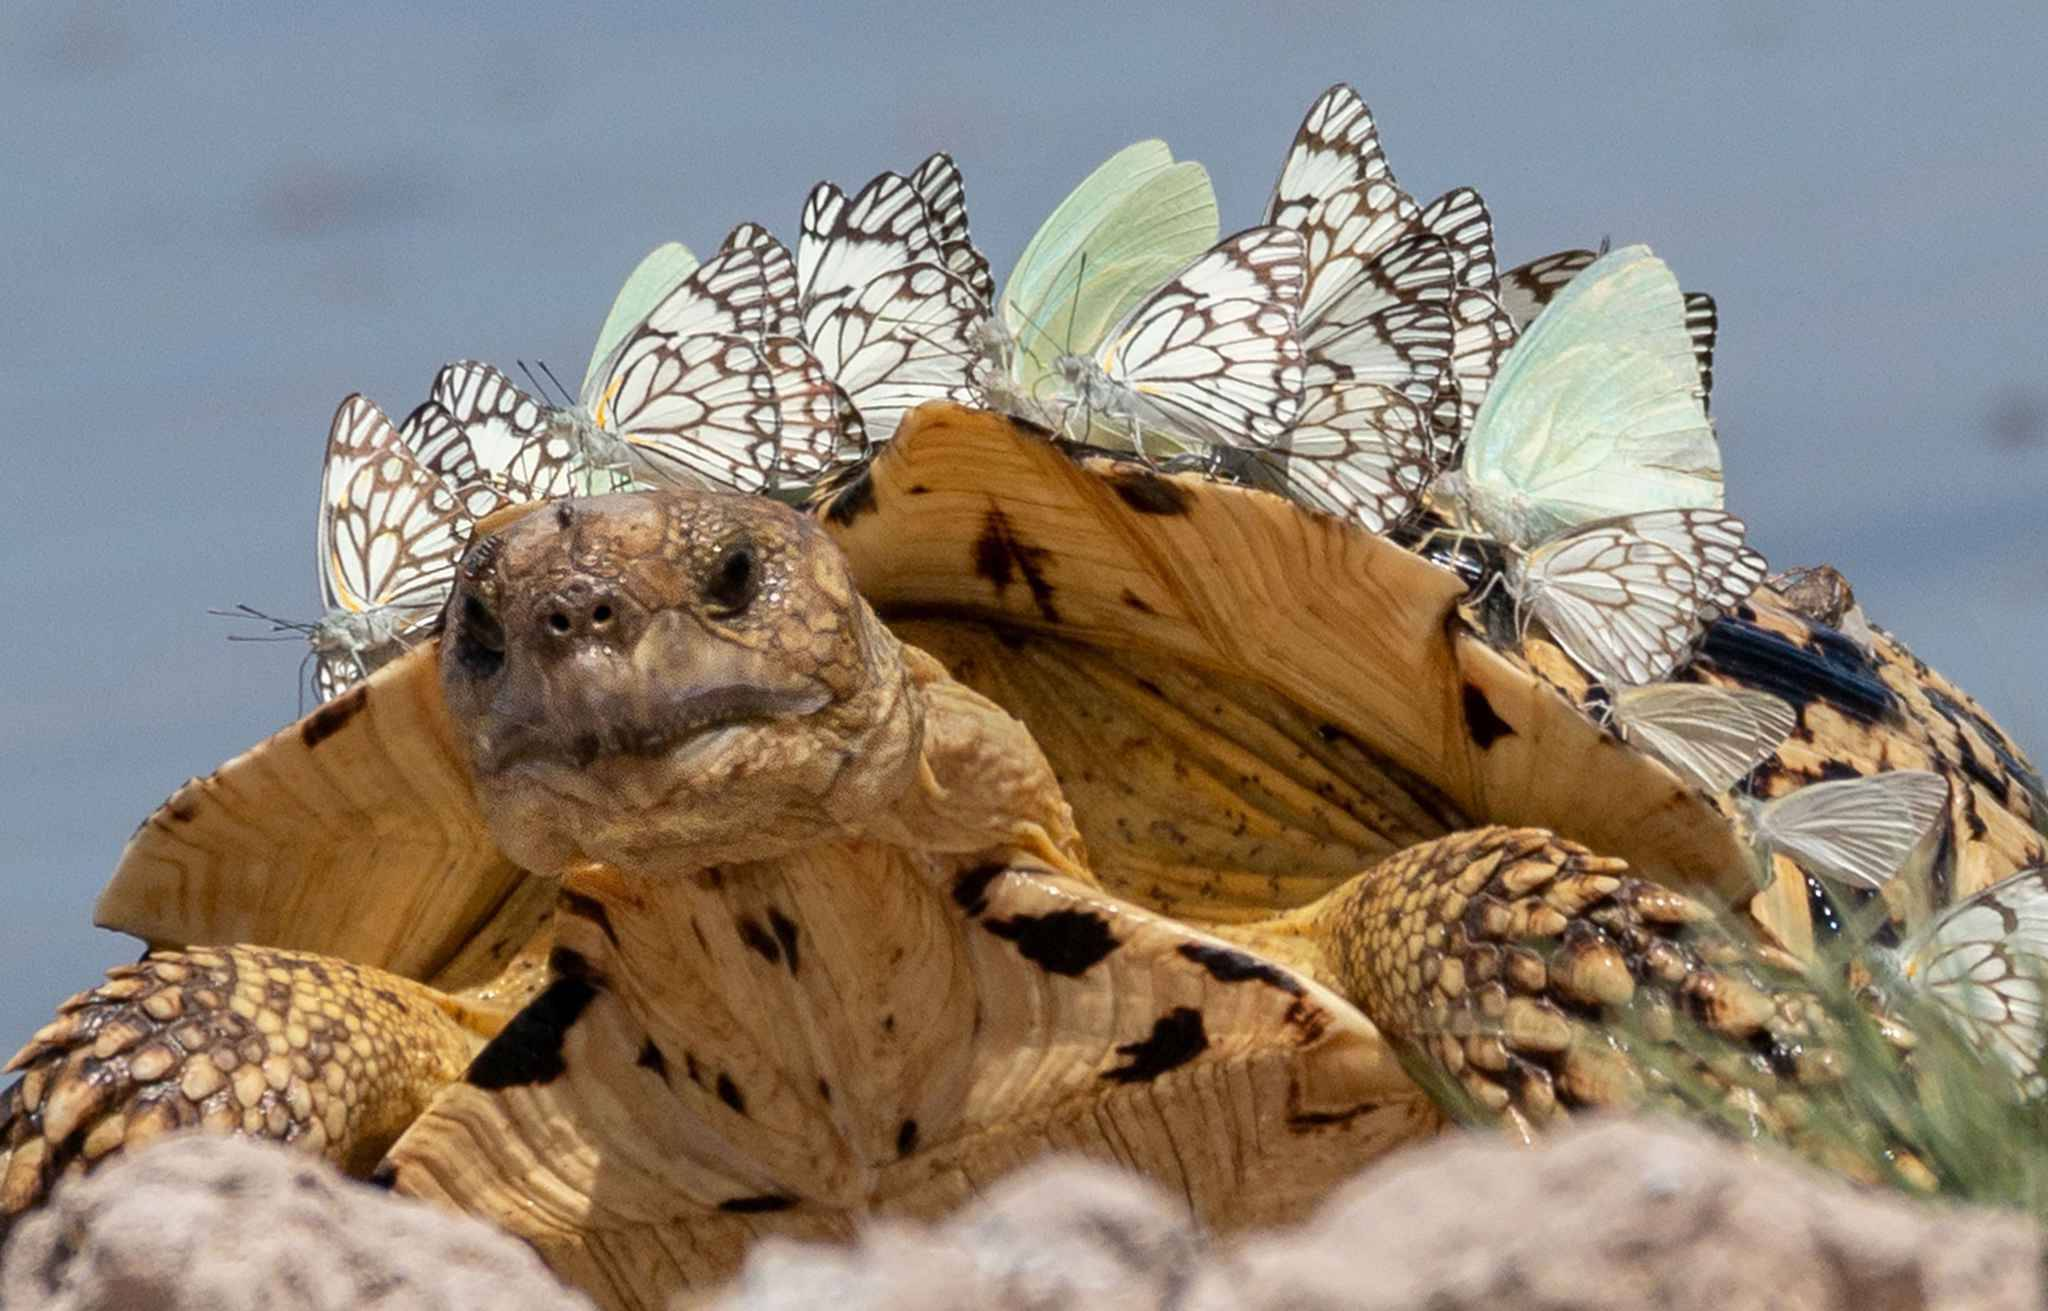 *MANDATORY BYLINE* PIC FROM Hubert Janiszewski/Caters News - (PICTURED: The turtle with butterflies perched on him in Botswana, Lesholoago waterhole at Mabuasehube Game Reserve. PIC TAKEN ON 26/02/19) - A turtle has been transformed into a Stegosaurus after a swarm butterflies landed on his back. The amazing images taken by Hubert Janiszewski, 43, taken earlier this year (February 26, 2019) showcase nature at its finest.Hubert was visiting Mabuasehube Game Reserve, Botswana, South Africa, when he spotted the turtle being bombarded by a swarm of butterflies.SEE CATERS COPY  - Hubert Janiszewski/Caters News